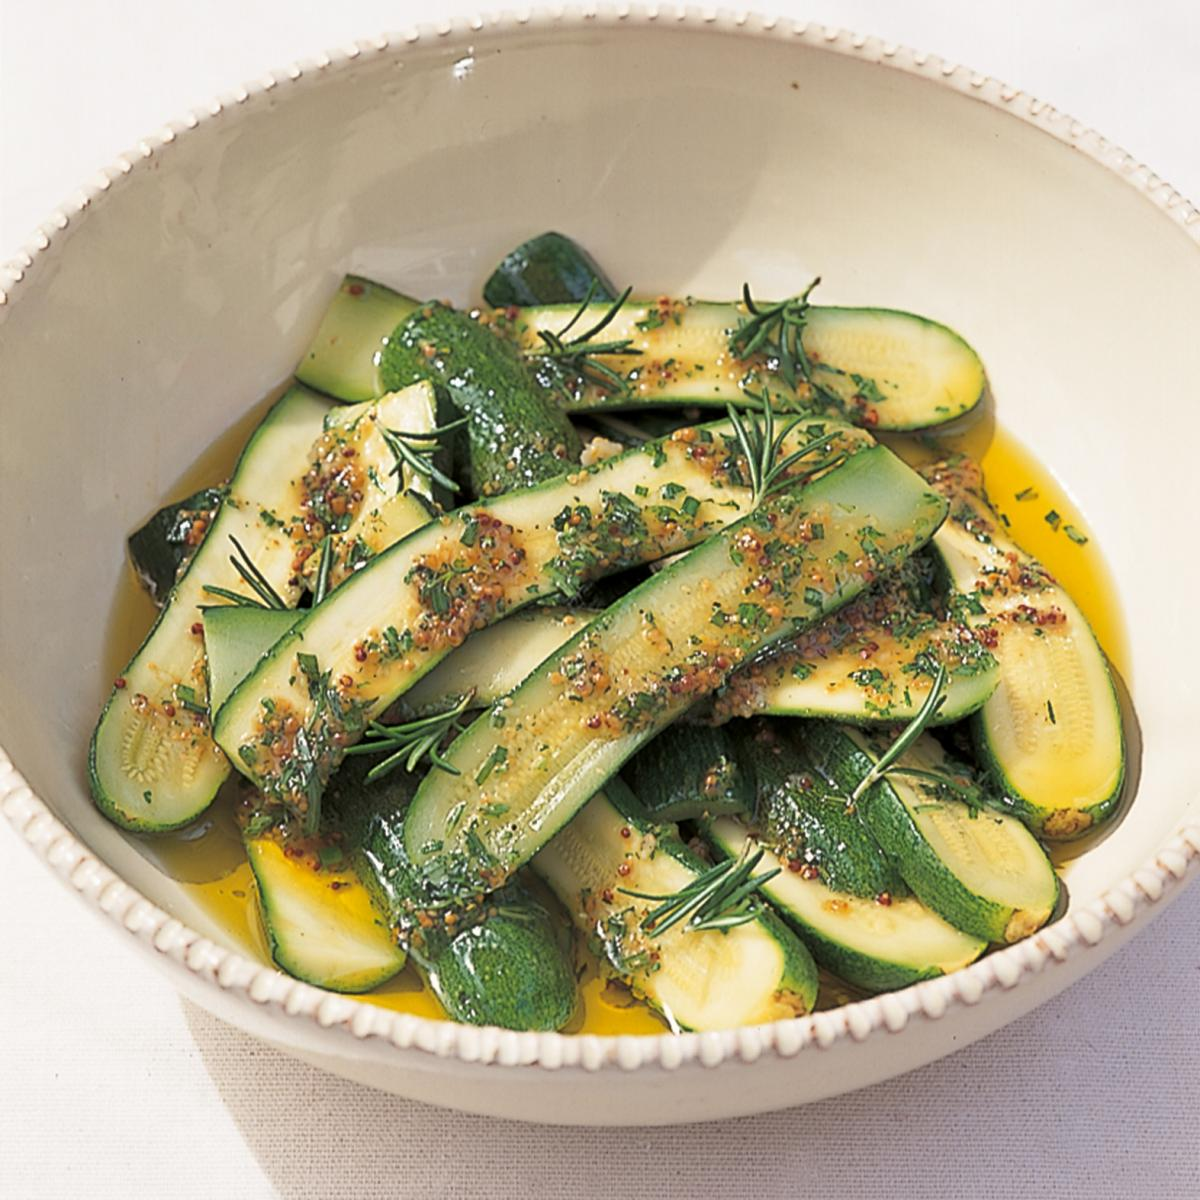 A picture of Delia's Marinated Courgettes with a Herb Vinaigrette recipe